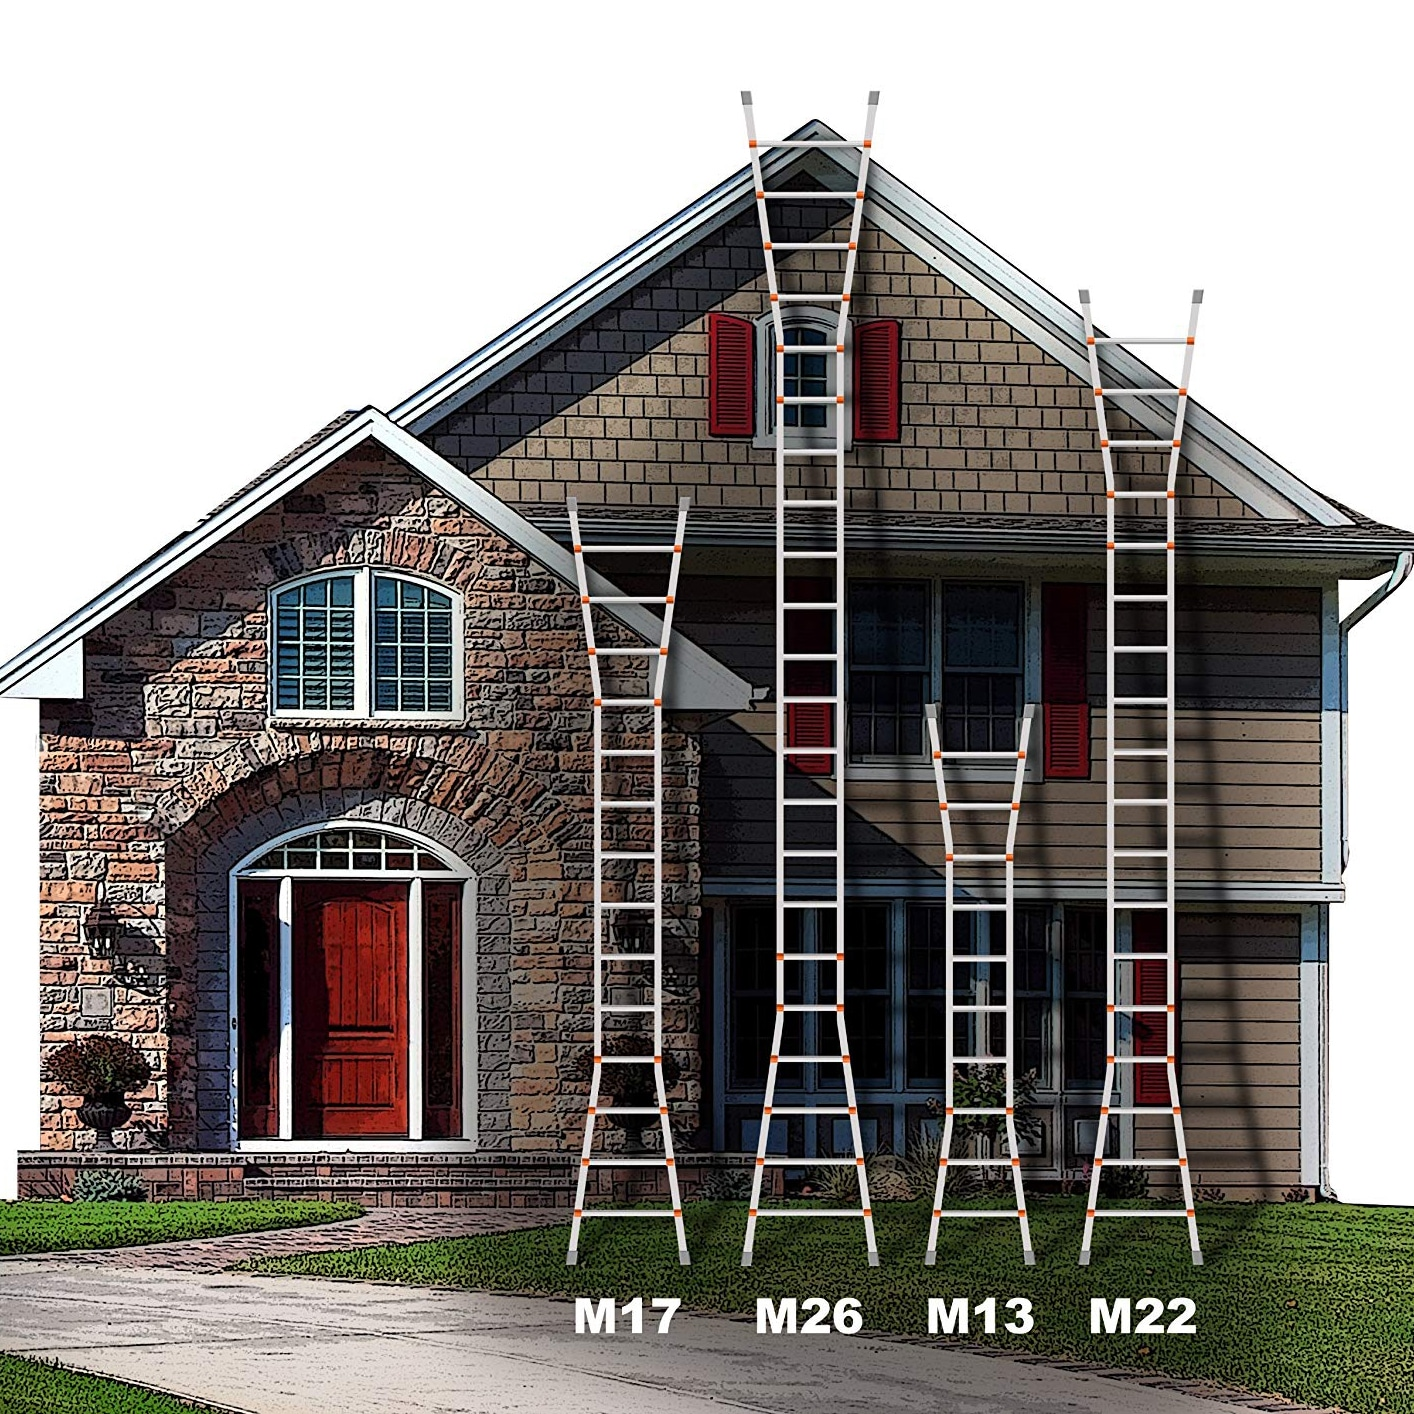 Little Giant 14013 Multi Ladder